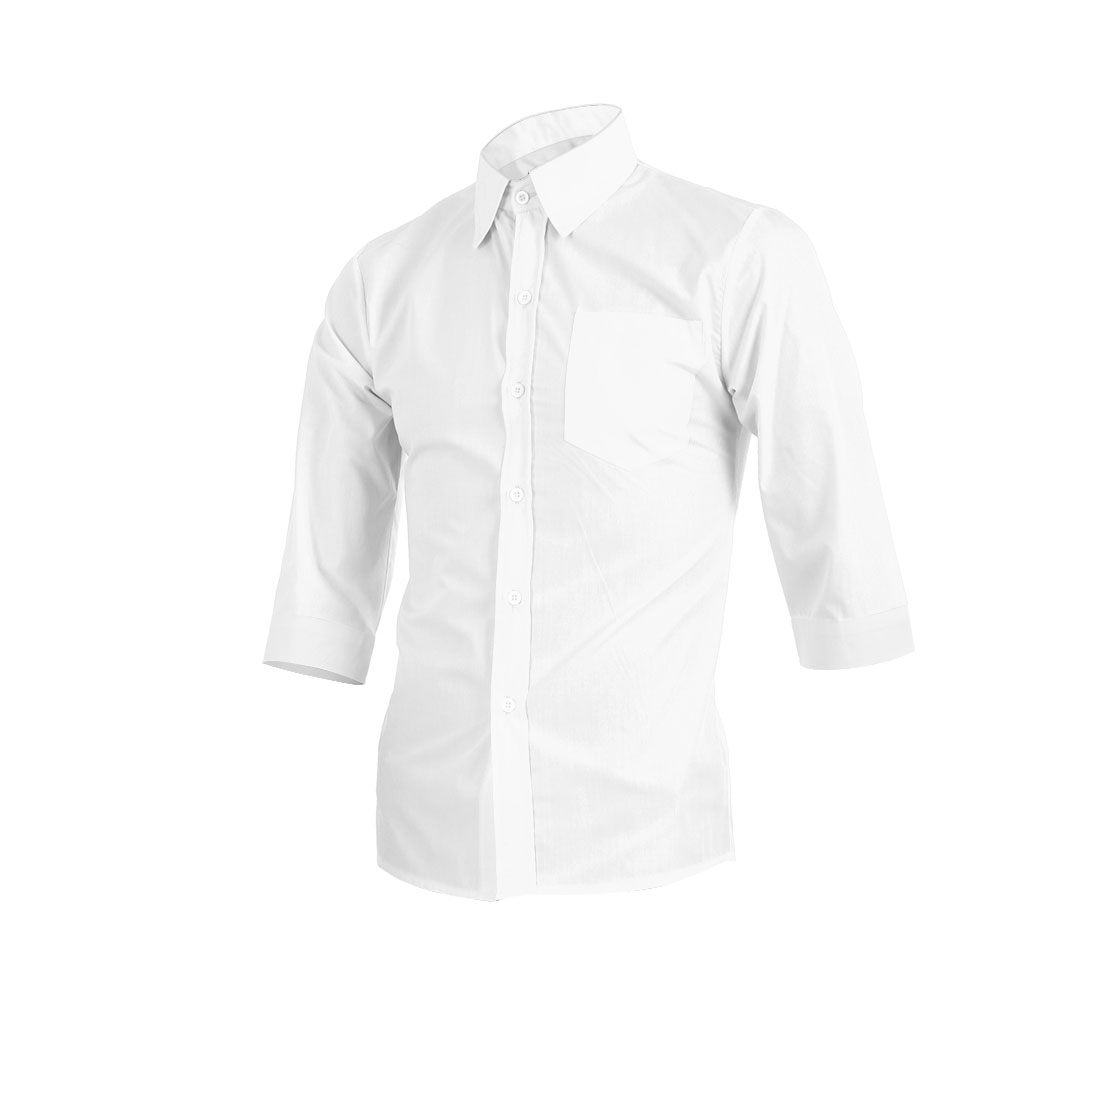 Men Point Collar Button Up Chest Pocket White Casual Shirt M